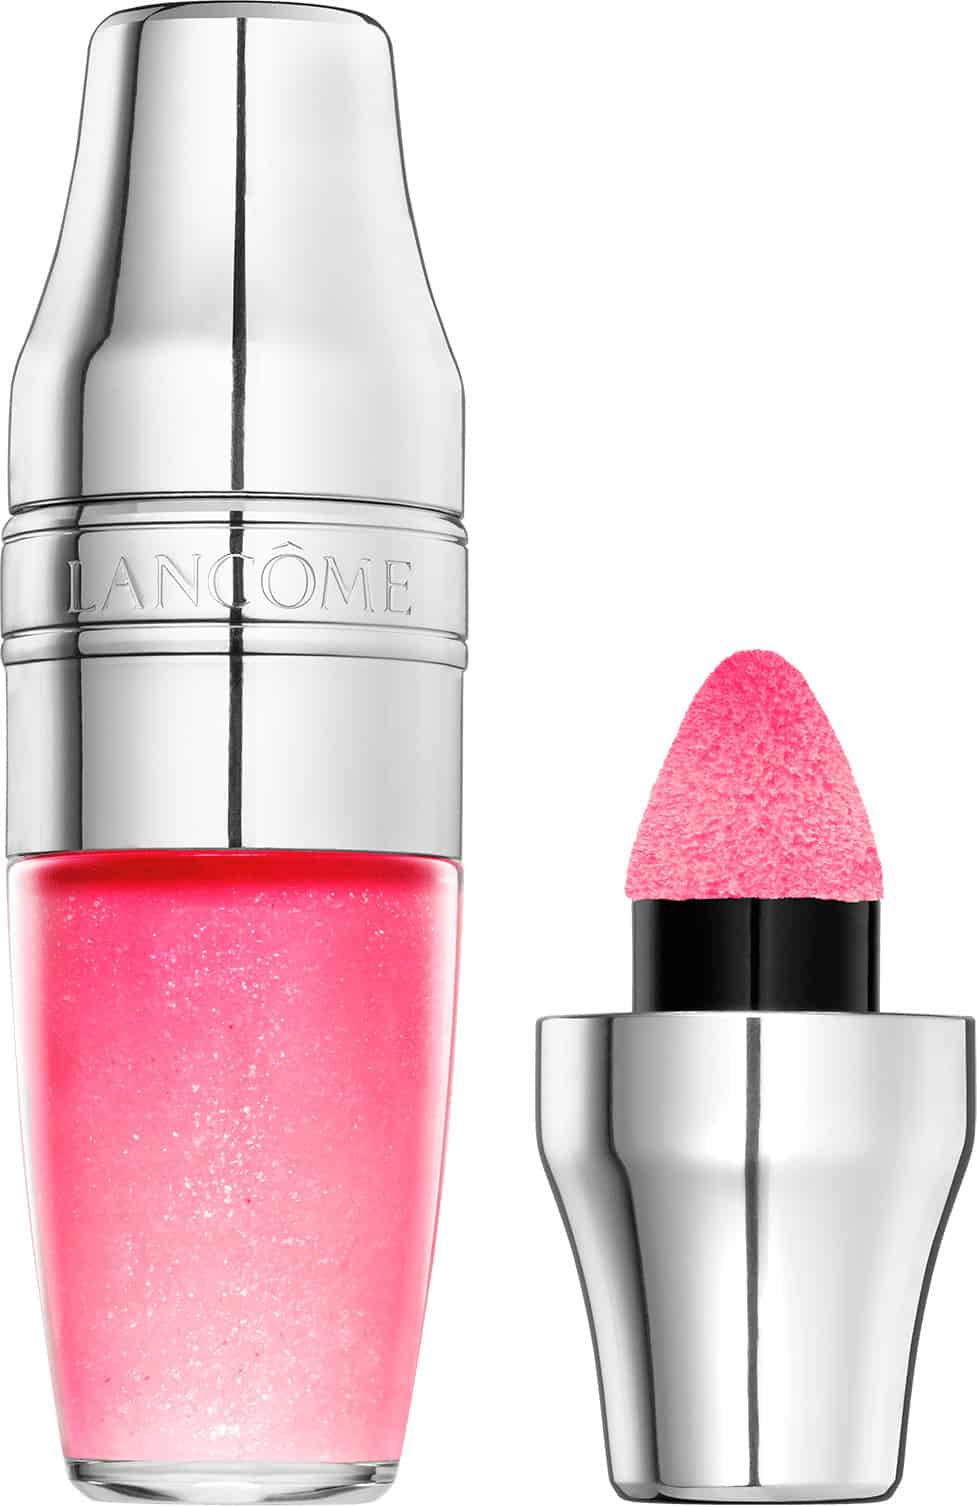 Lancome Juicy Shaker Pigment Infused Bi Phase Lip Oil Freedom Of Peach